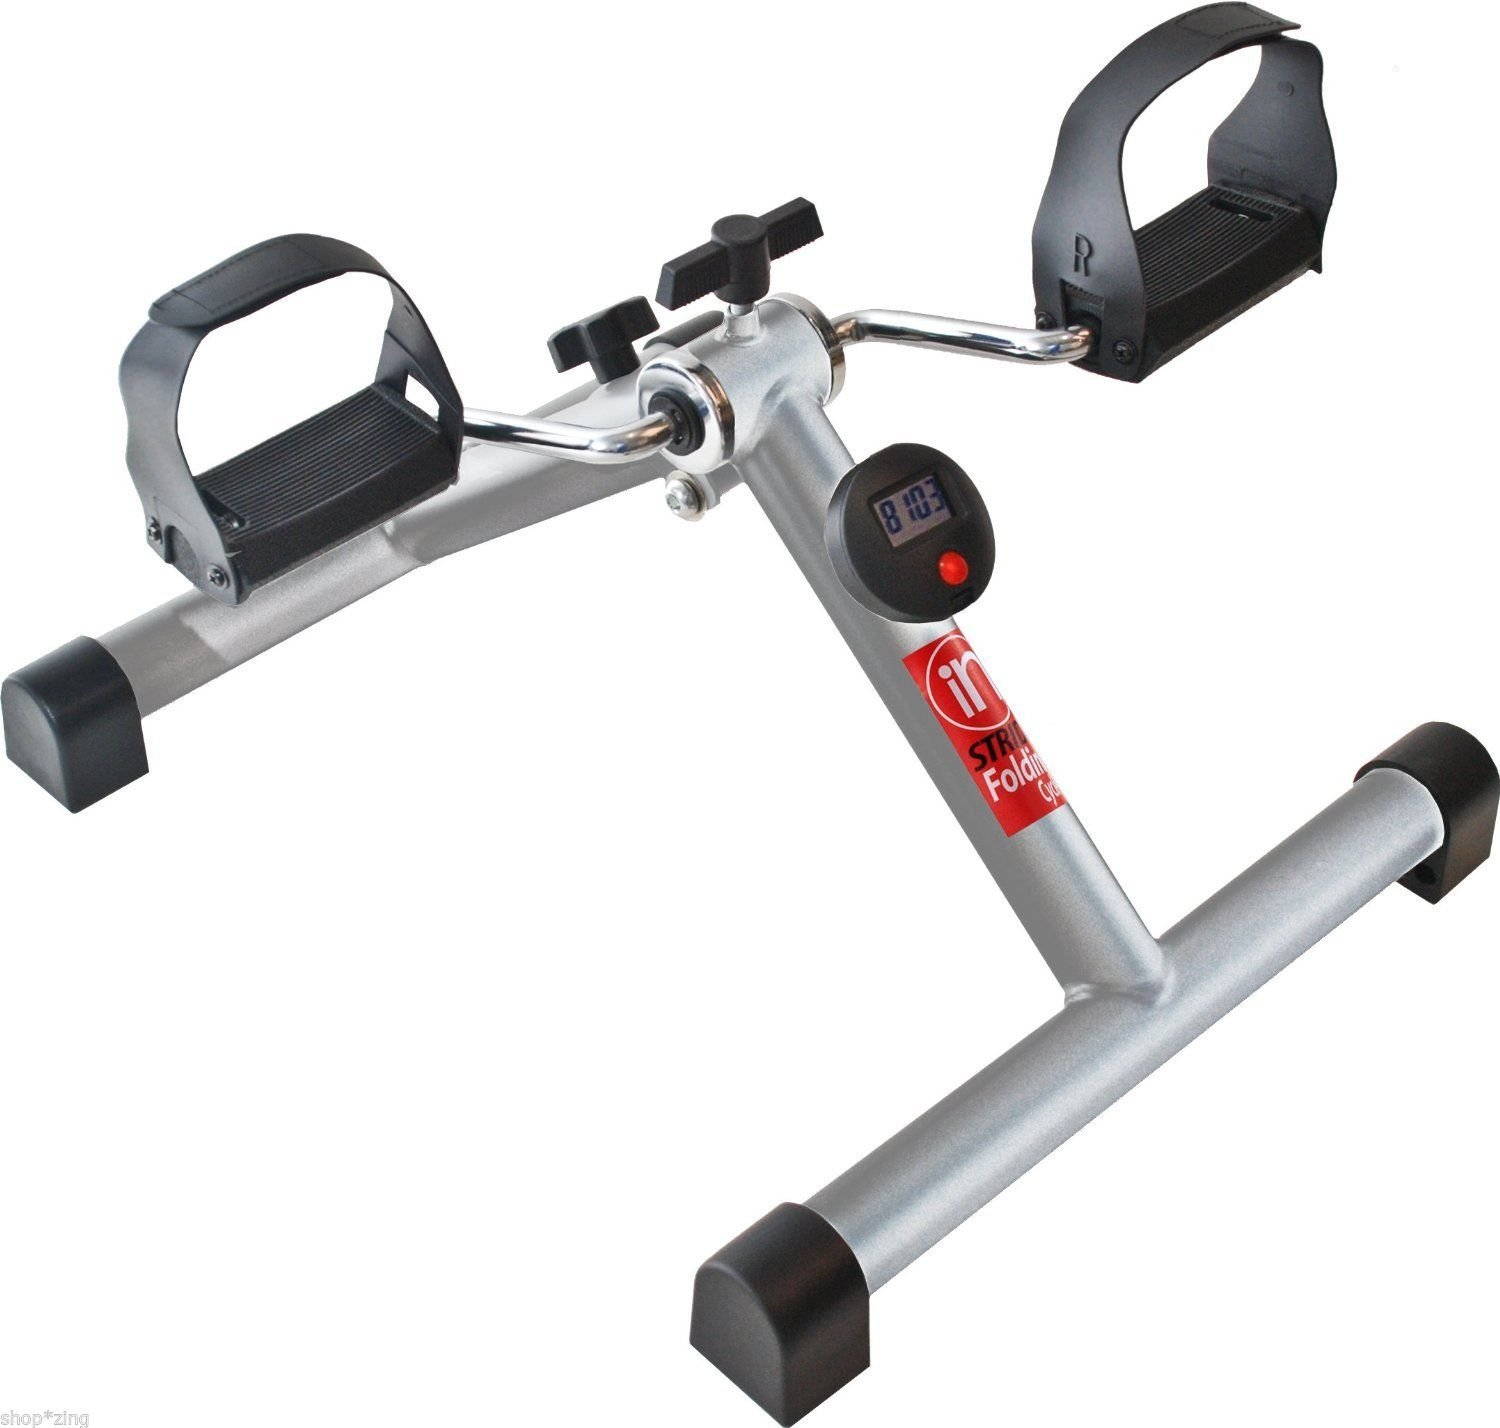 Stationary Exercise Bike Compact Pedal Adjustable Tension Portable Folding Cycle